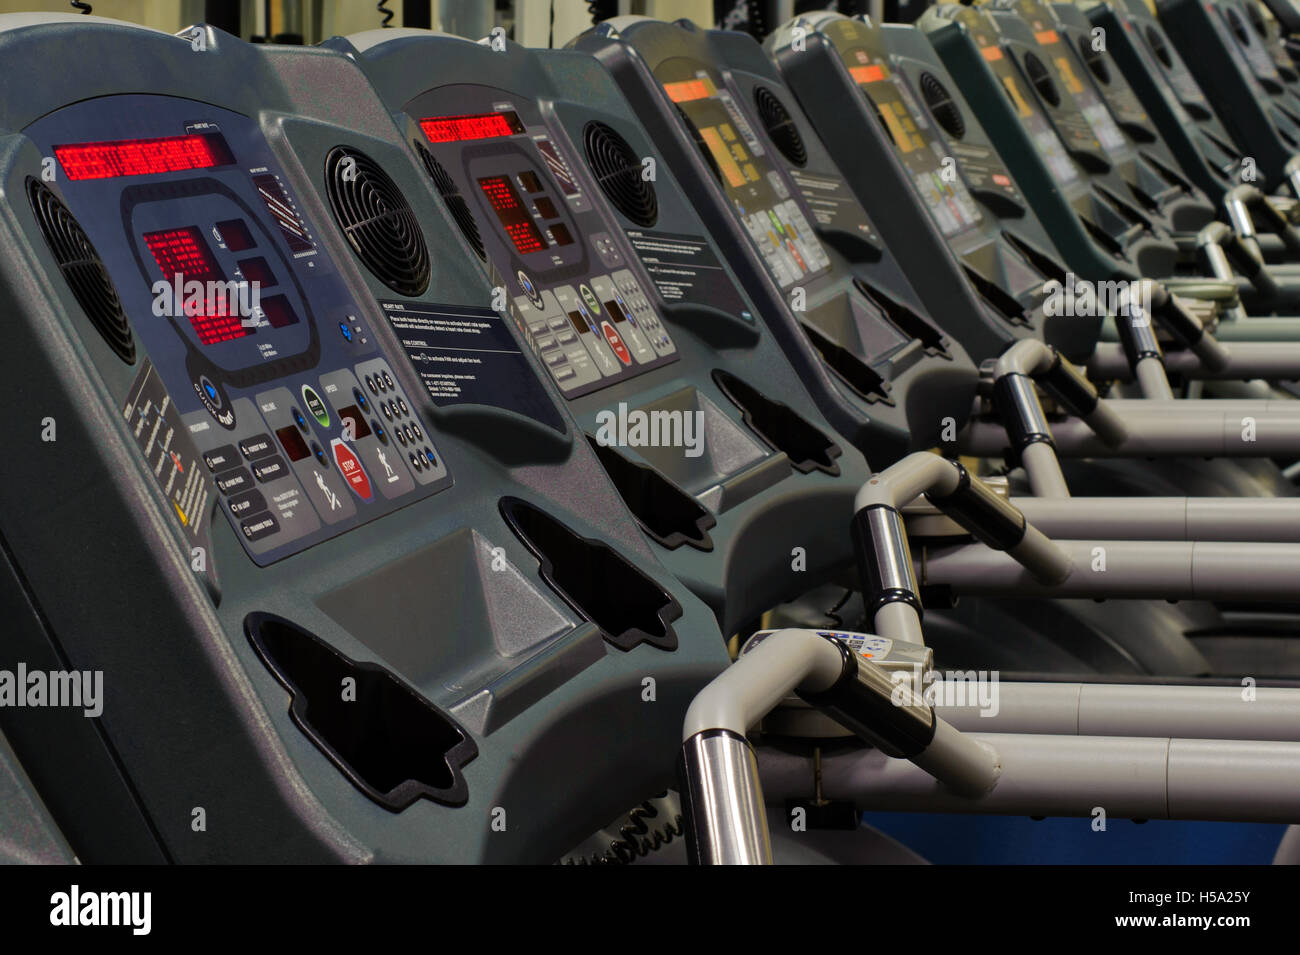 Row of treadmill consoles in the gym sitting empty. - Stock Image